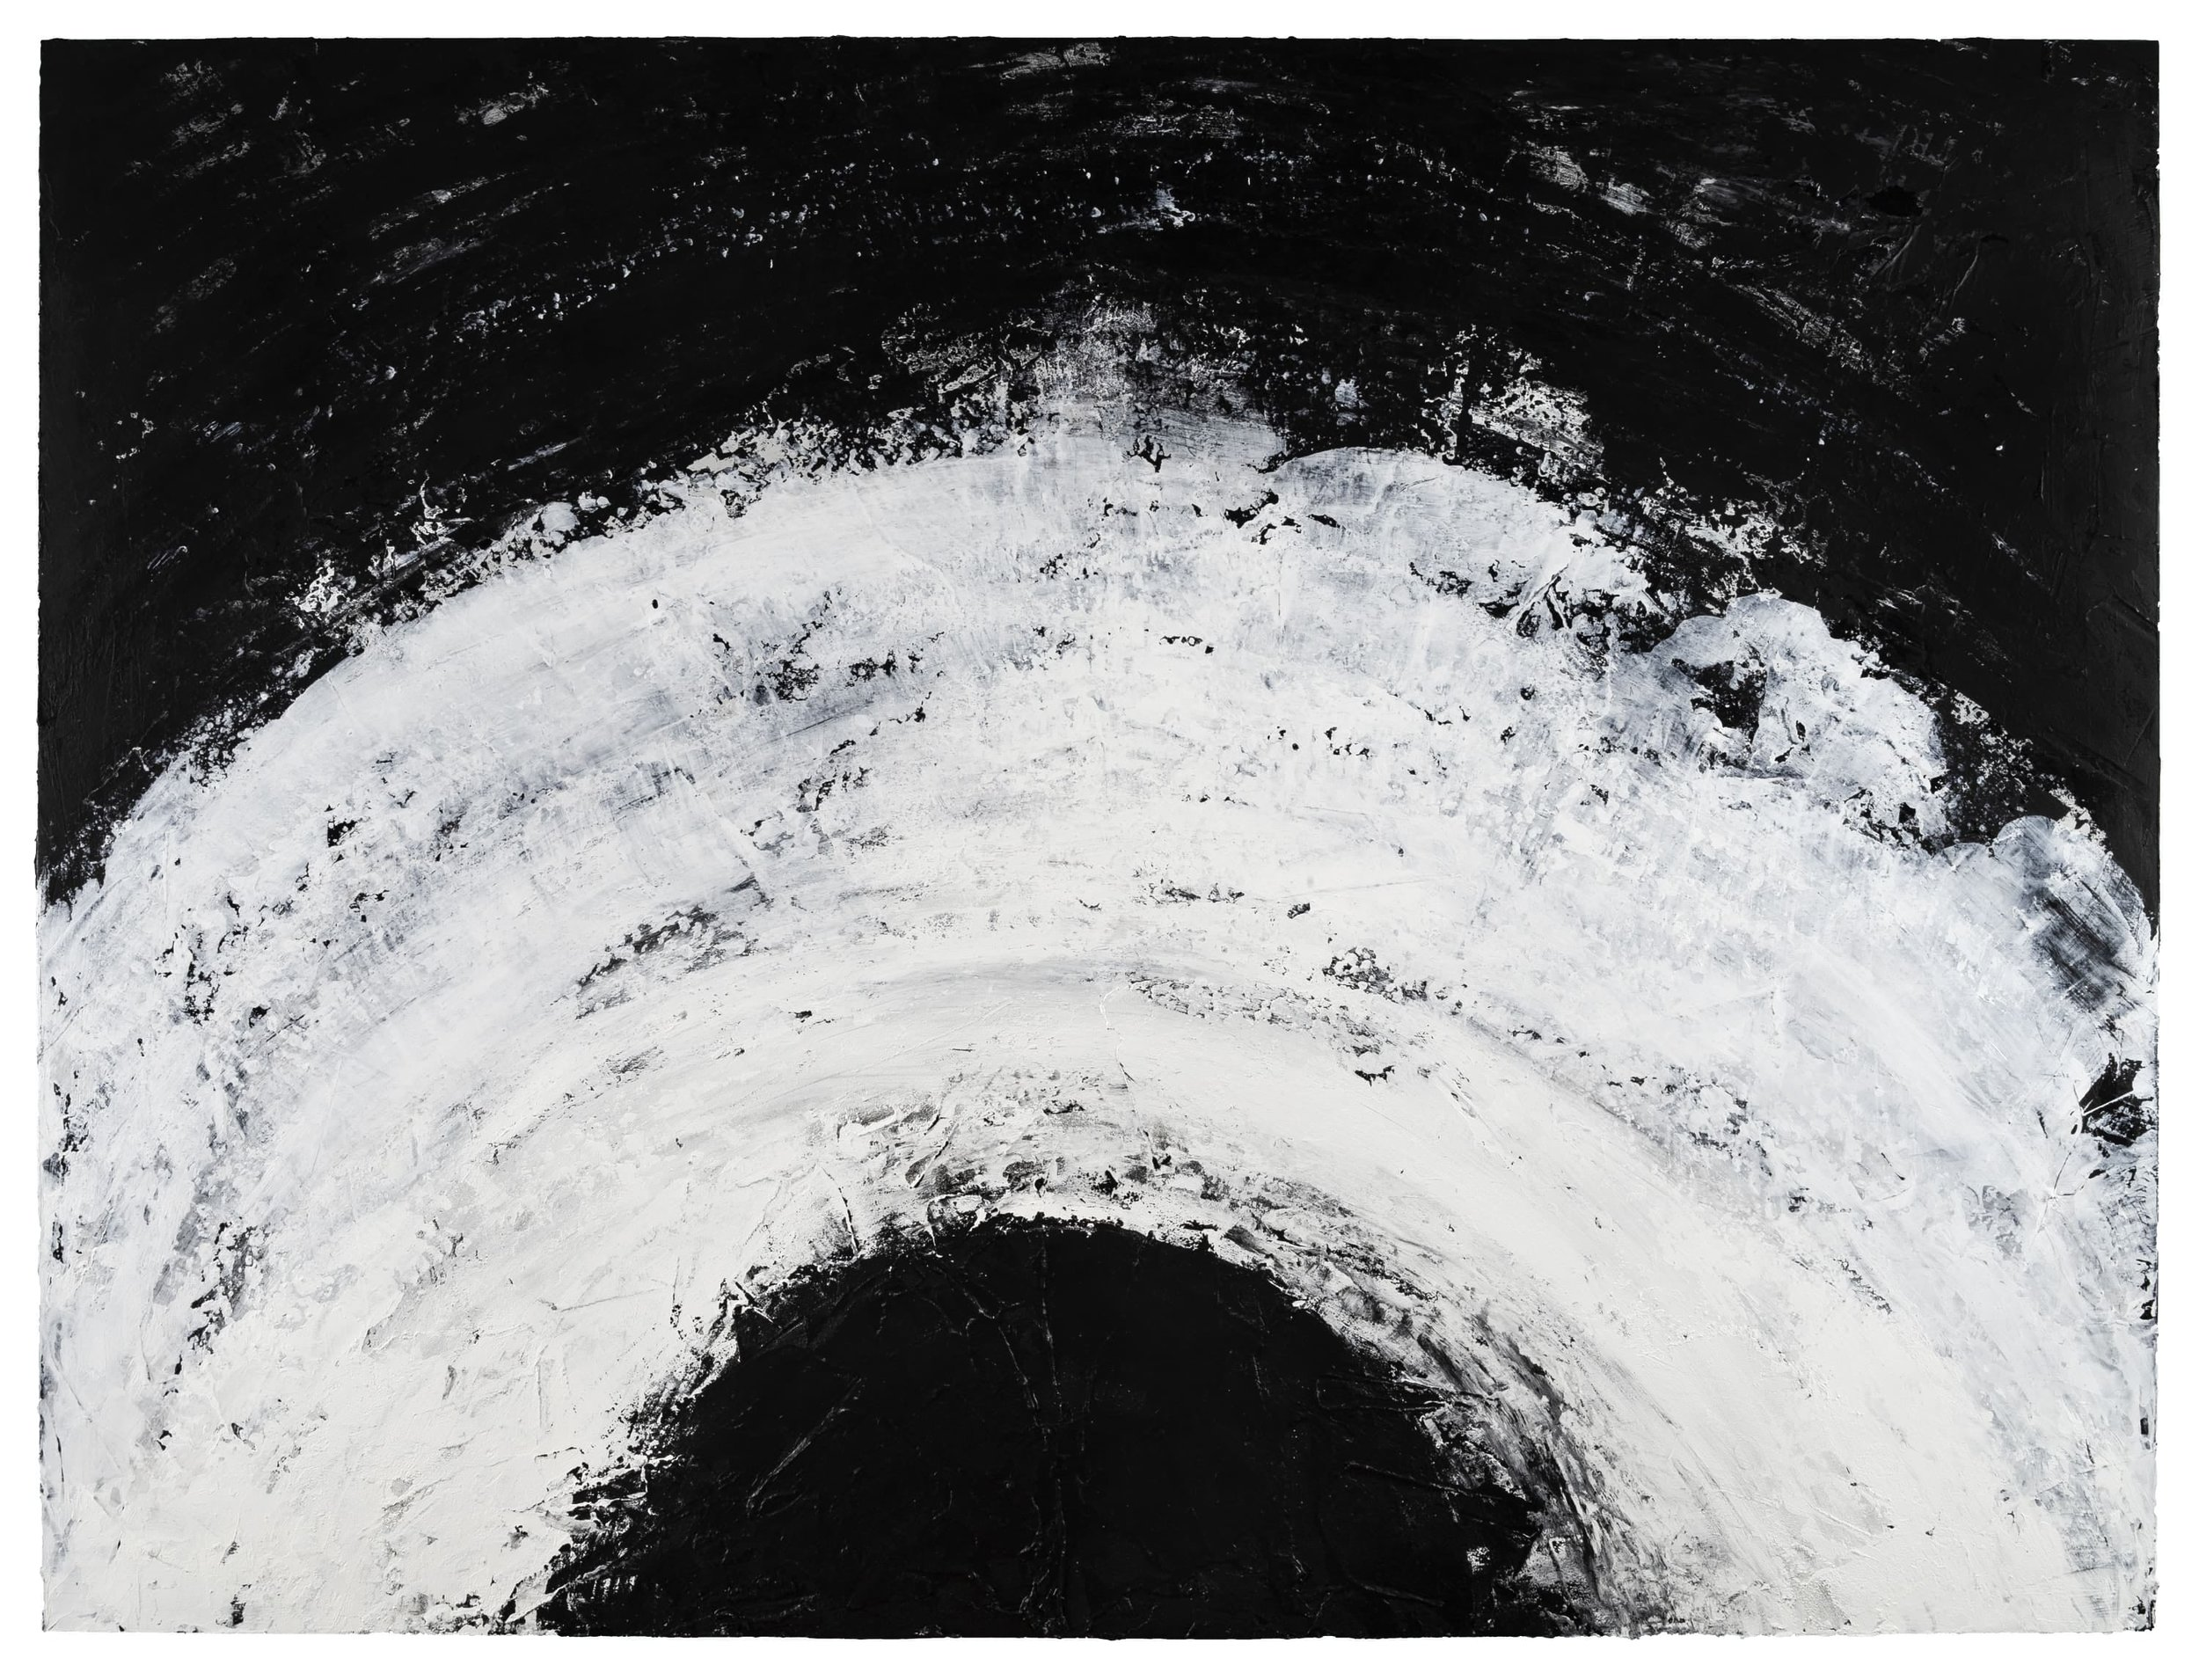 Lens , 2019 Acrylic, pumice, black gesso on birch 36 × 48 in (91.4 × 121.9 cm)